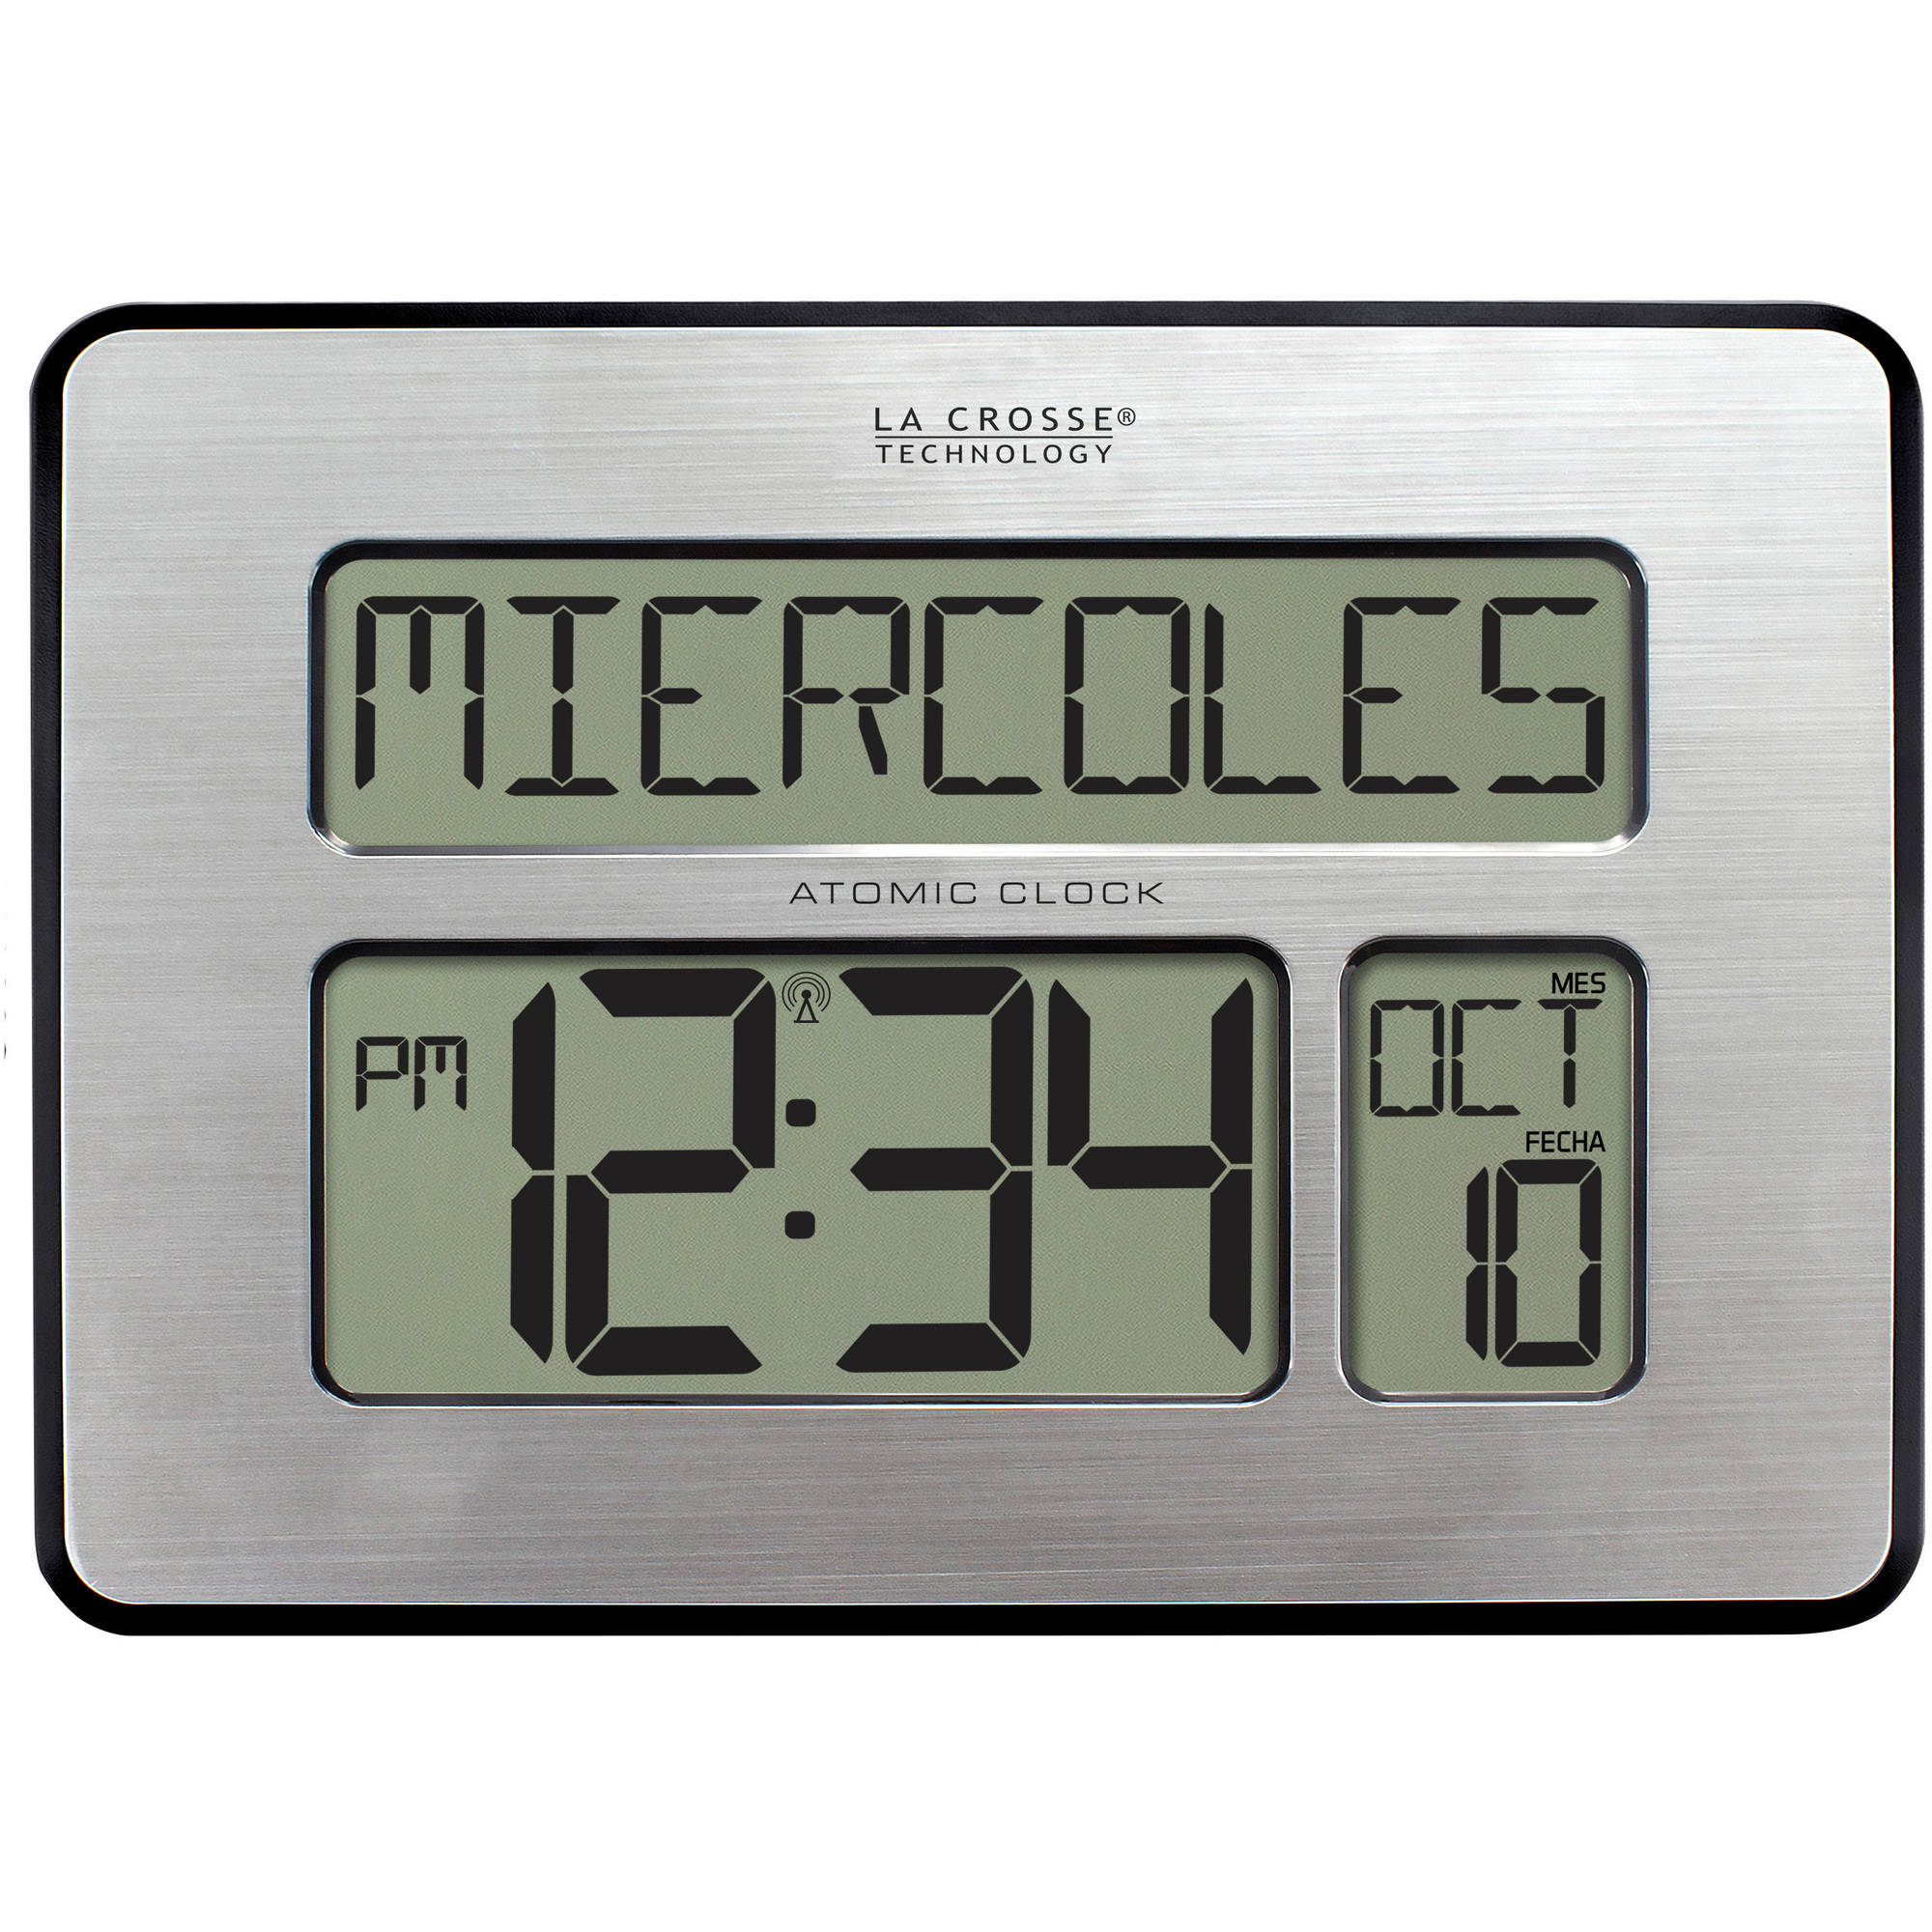 La crosse technology 16 inch extra large atomic digital wall clock wall clocks - Extra large digital wall clock ...